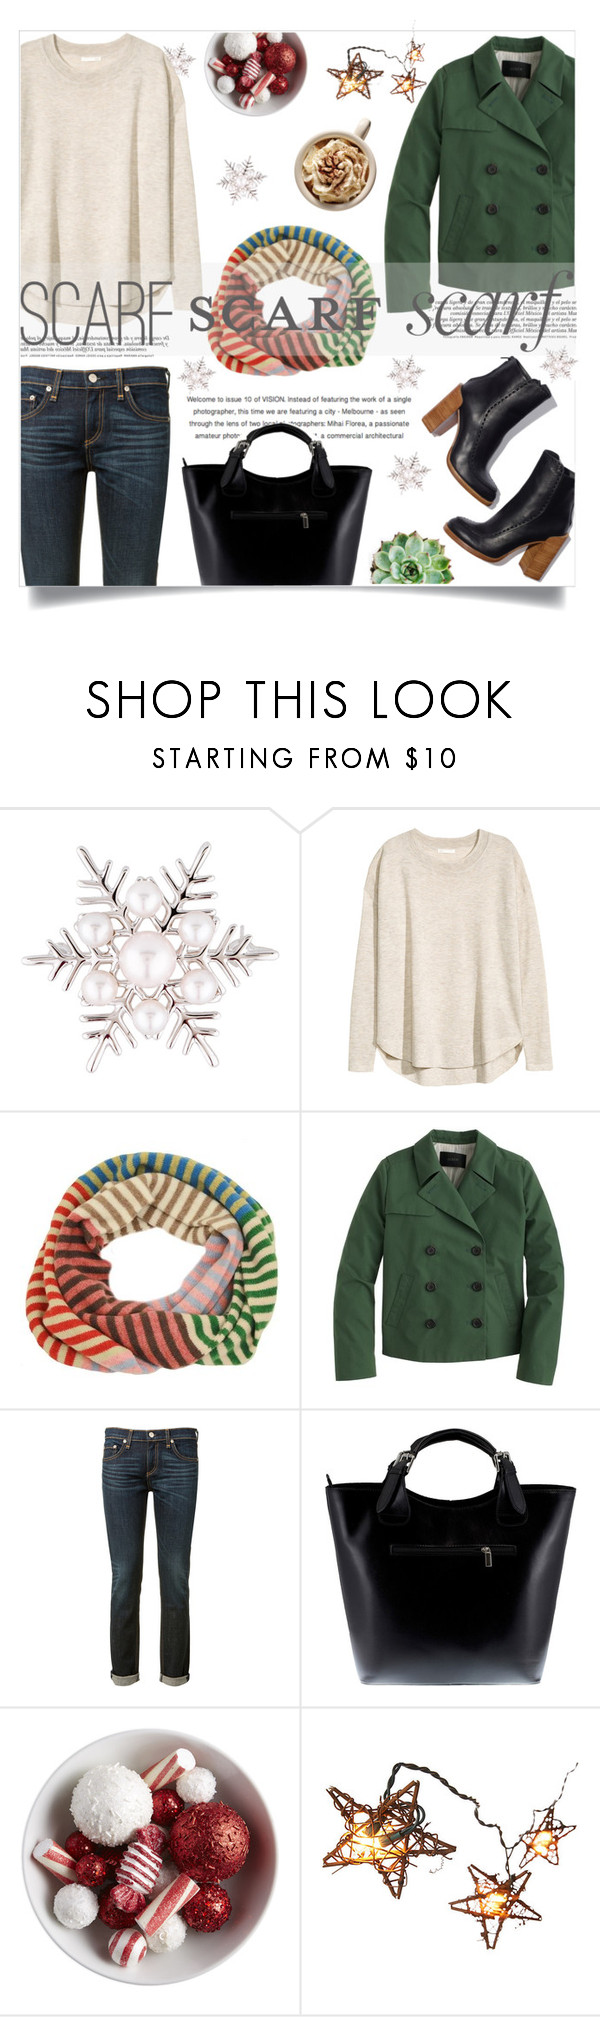 """Fun Winter Scarf!"" by viola-vu ❤ liked on Polyvore featuring Mikimoto, H&M, J.Crew, rag & bone and Massimo Castelli"